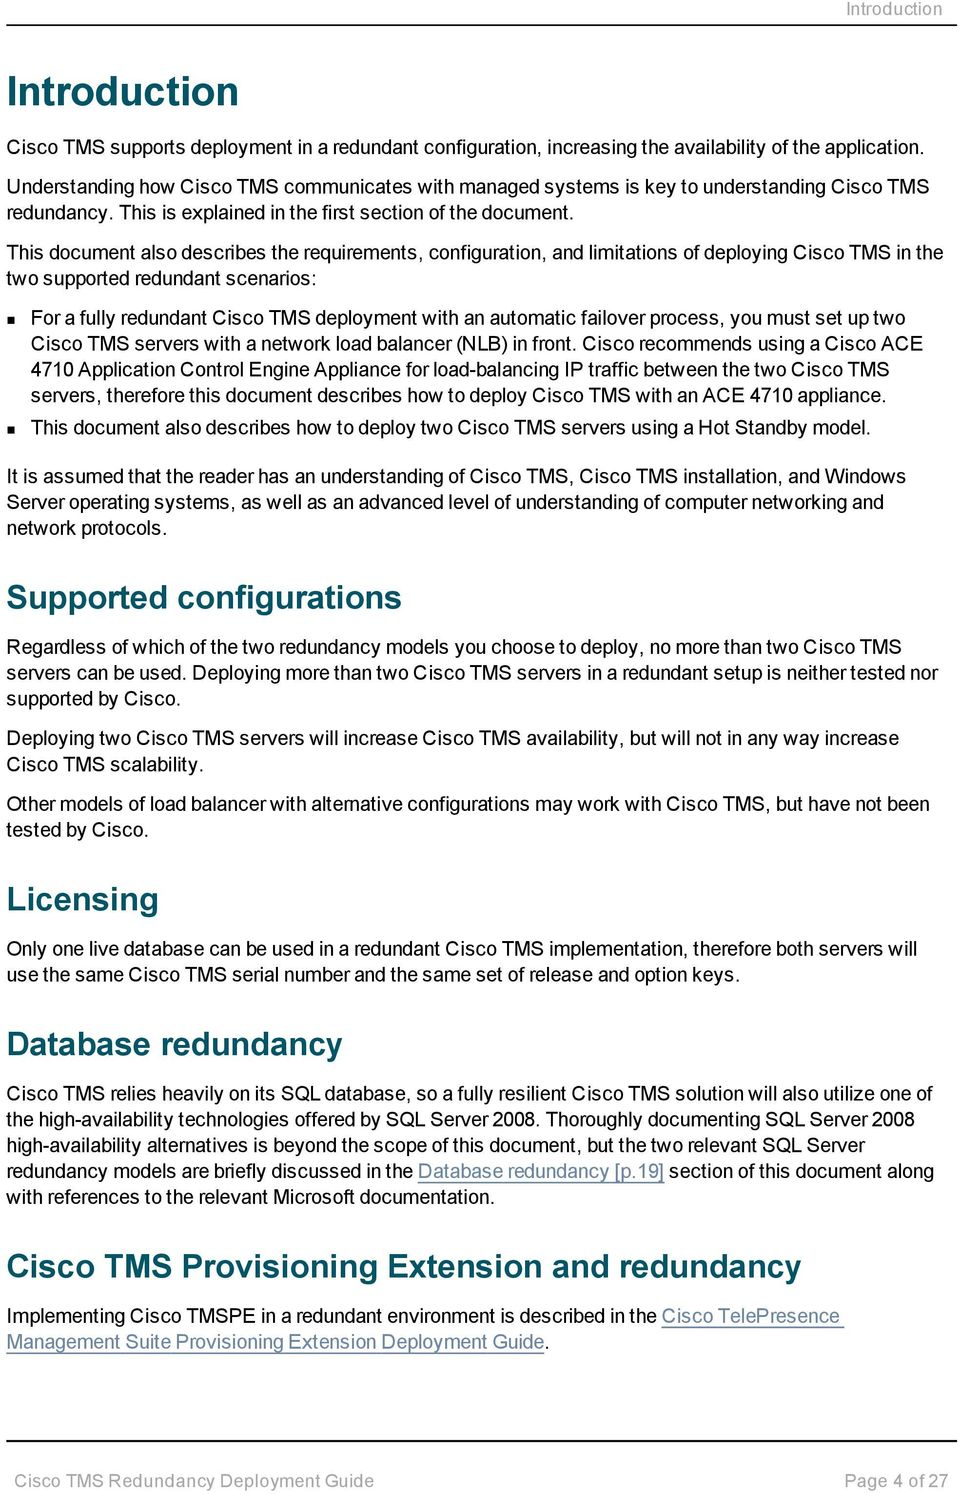 This document also describes the requirements, configuration, and  limitations of deploying Cisco TMS in